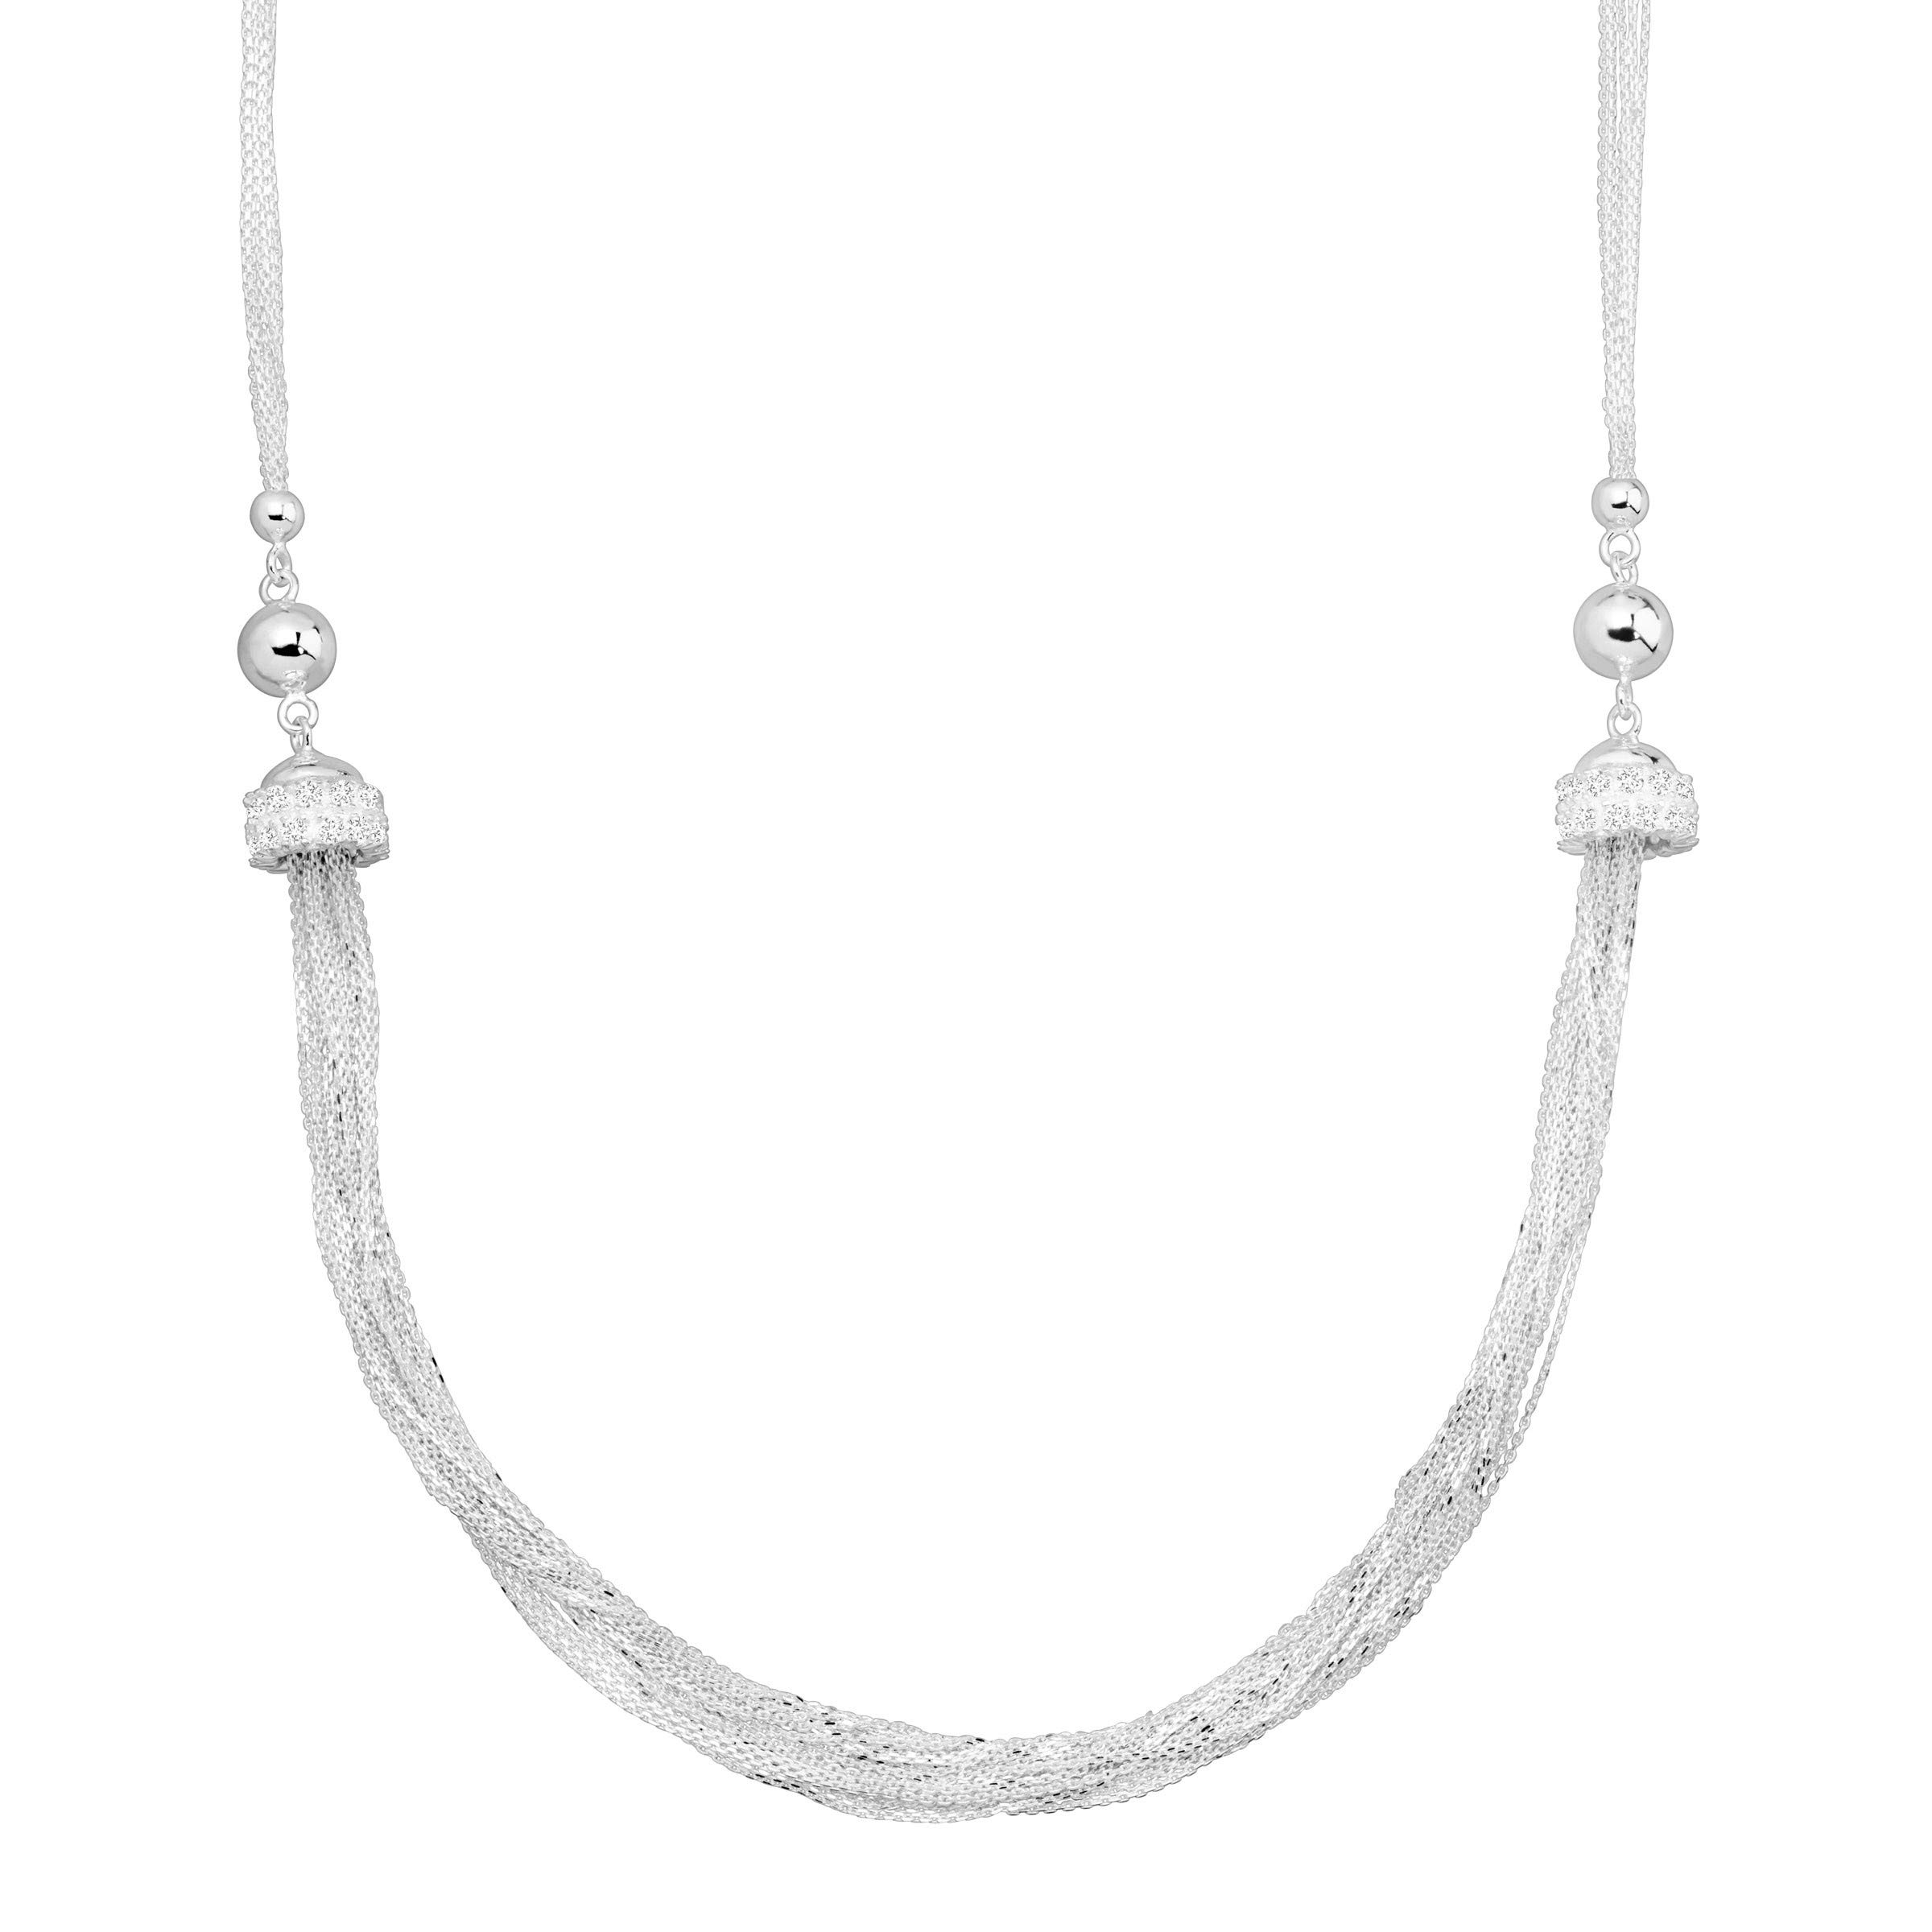 Silpada 'Cityscape' Multi-Strand Necklace with Cubic Zirconia in Sterling Silver